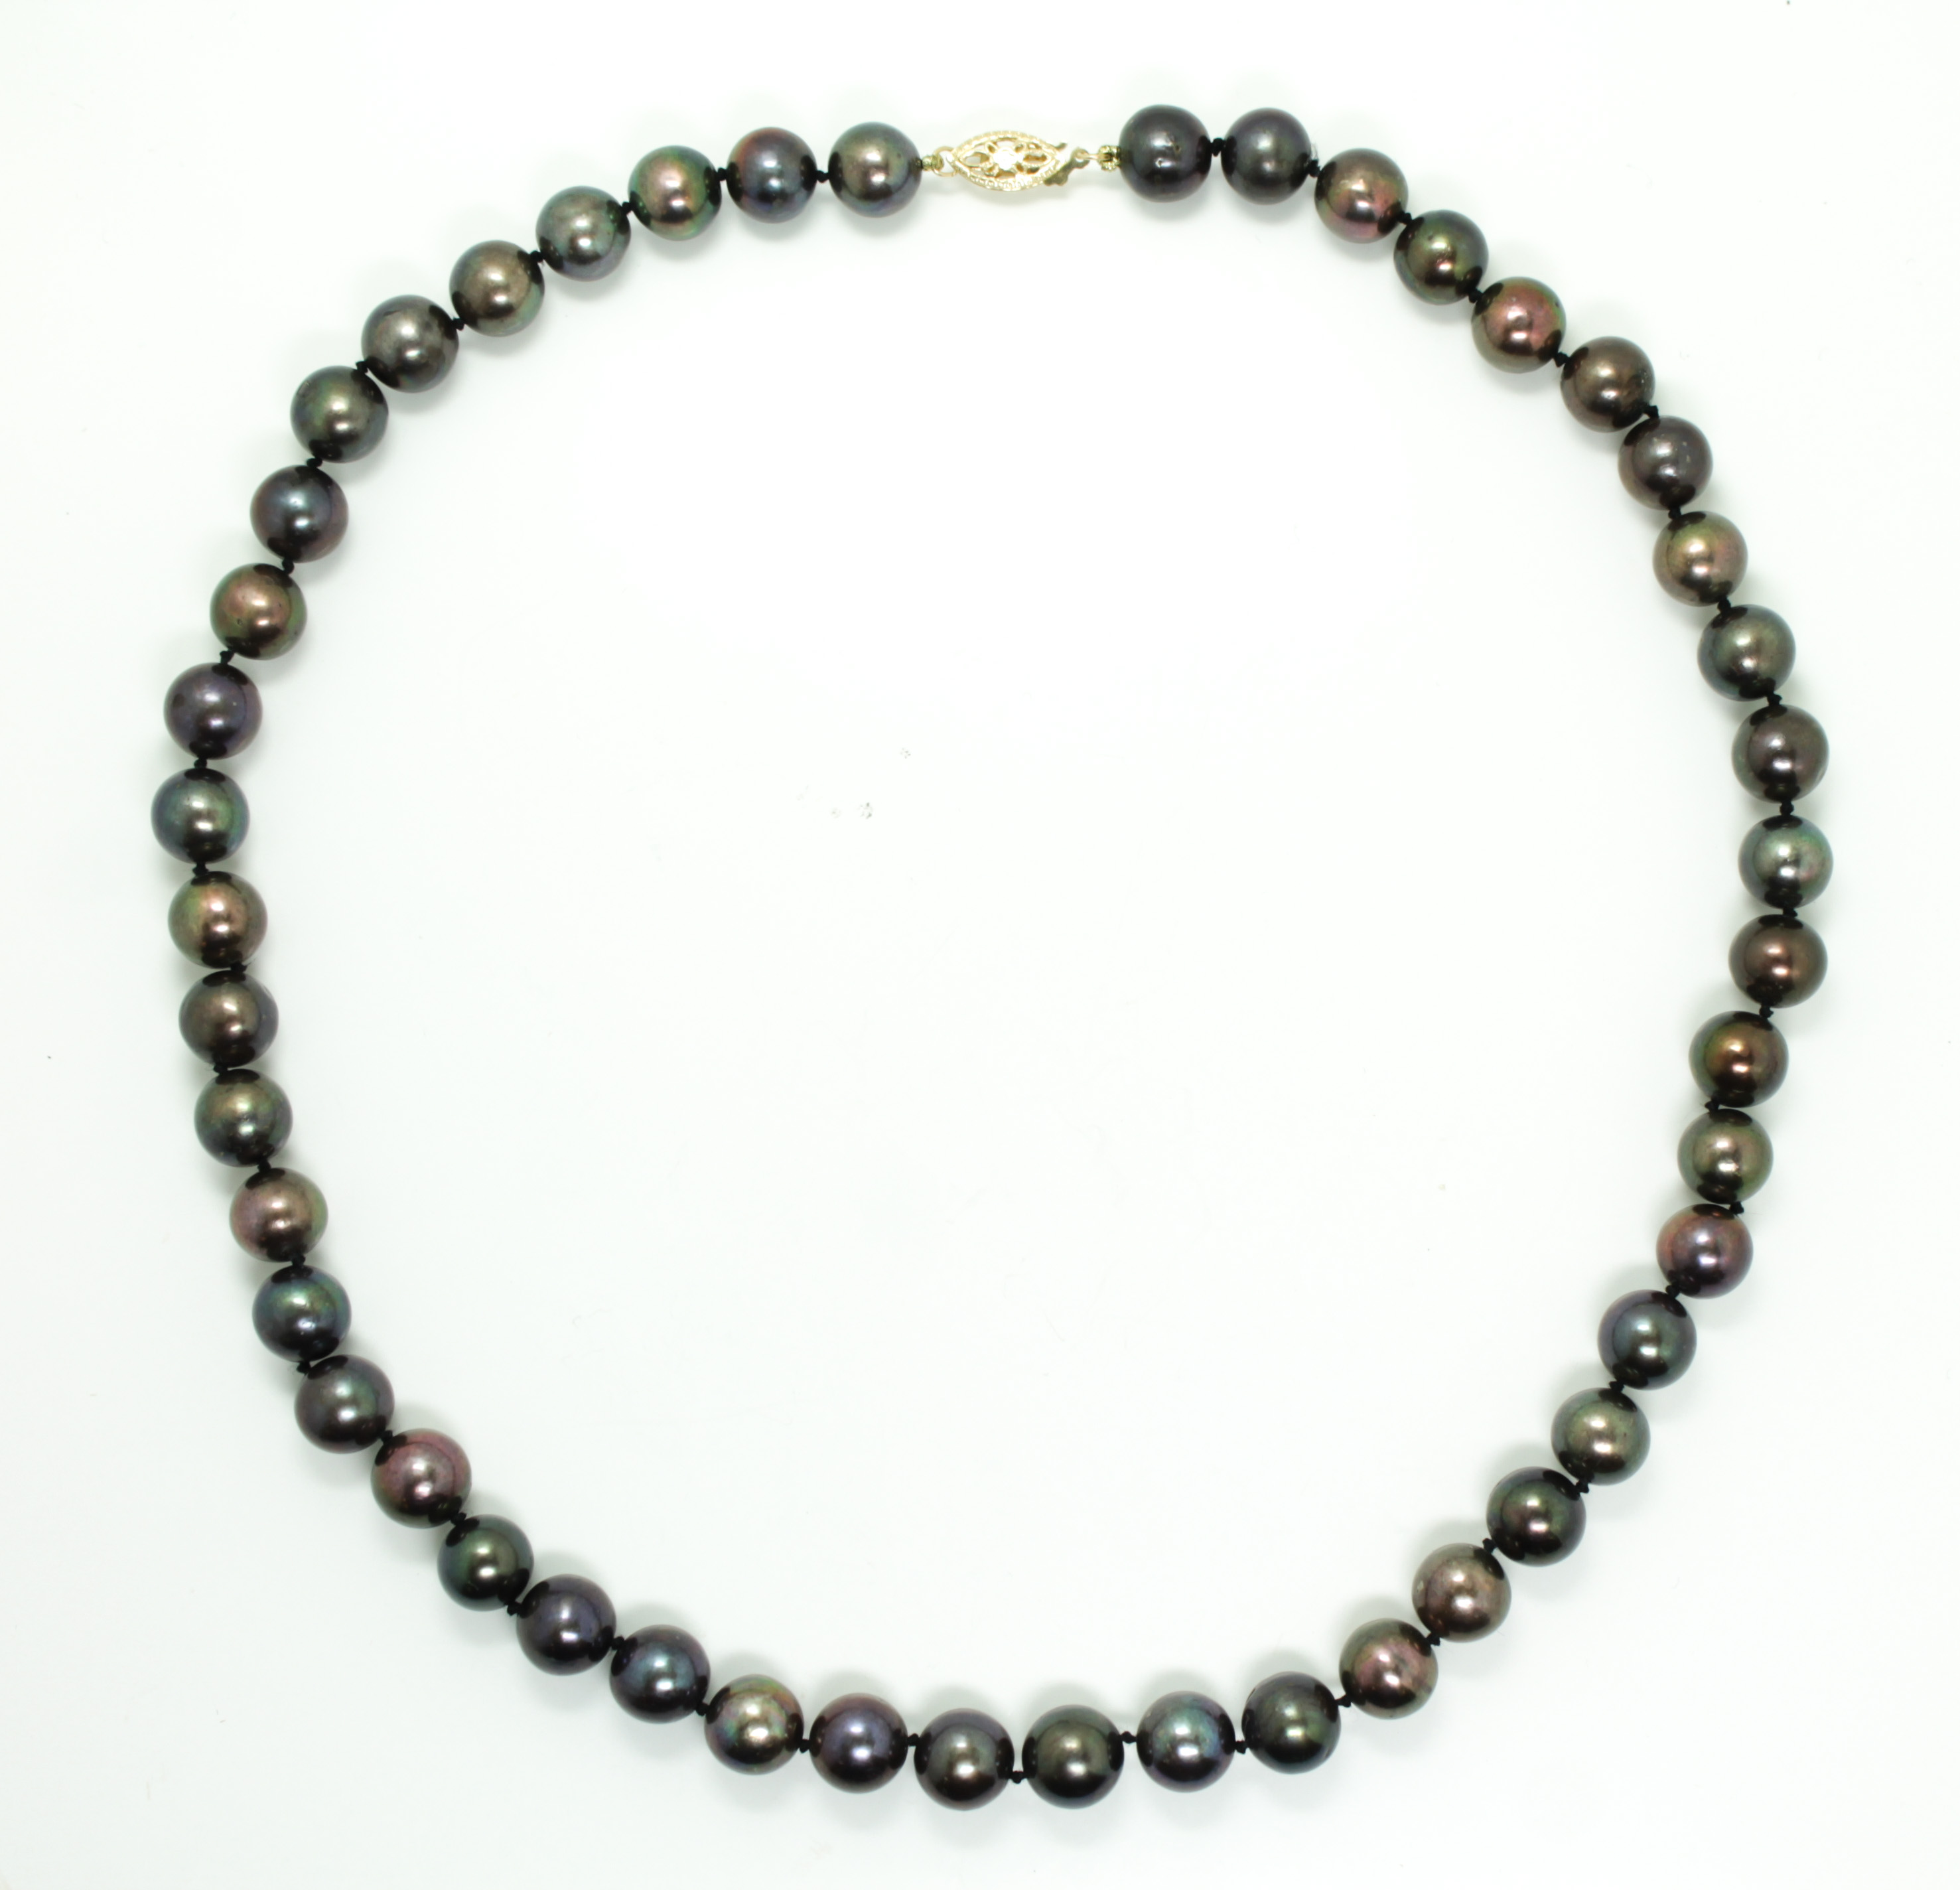 Single Strand Pearl Necklace: Vintage 1970s/80s South Sea Black Cultured Pearl Single